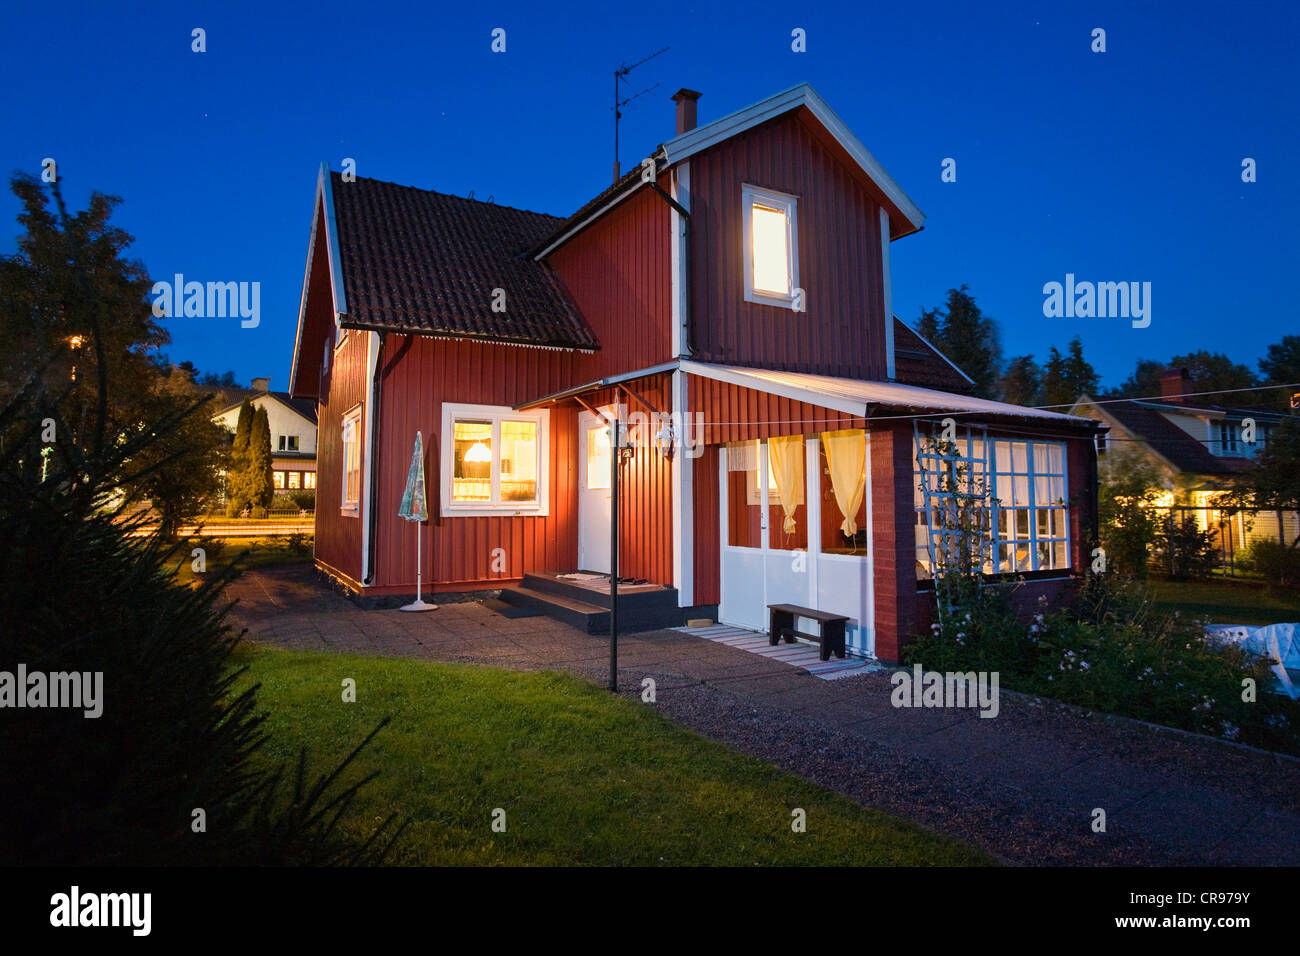 Typical swedish house at dusk in Alsterbro, blue hour, Smaland, South Sweden, Scandinavia, Europe - Stock Image